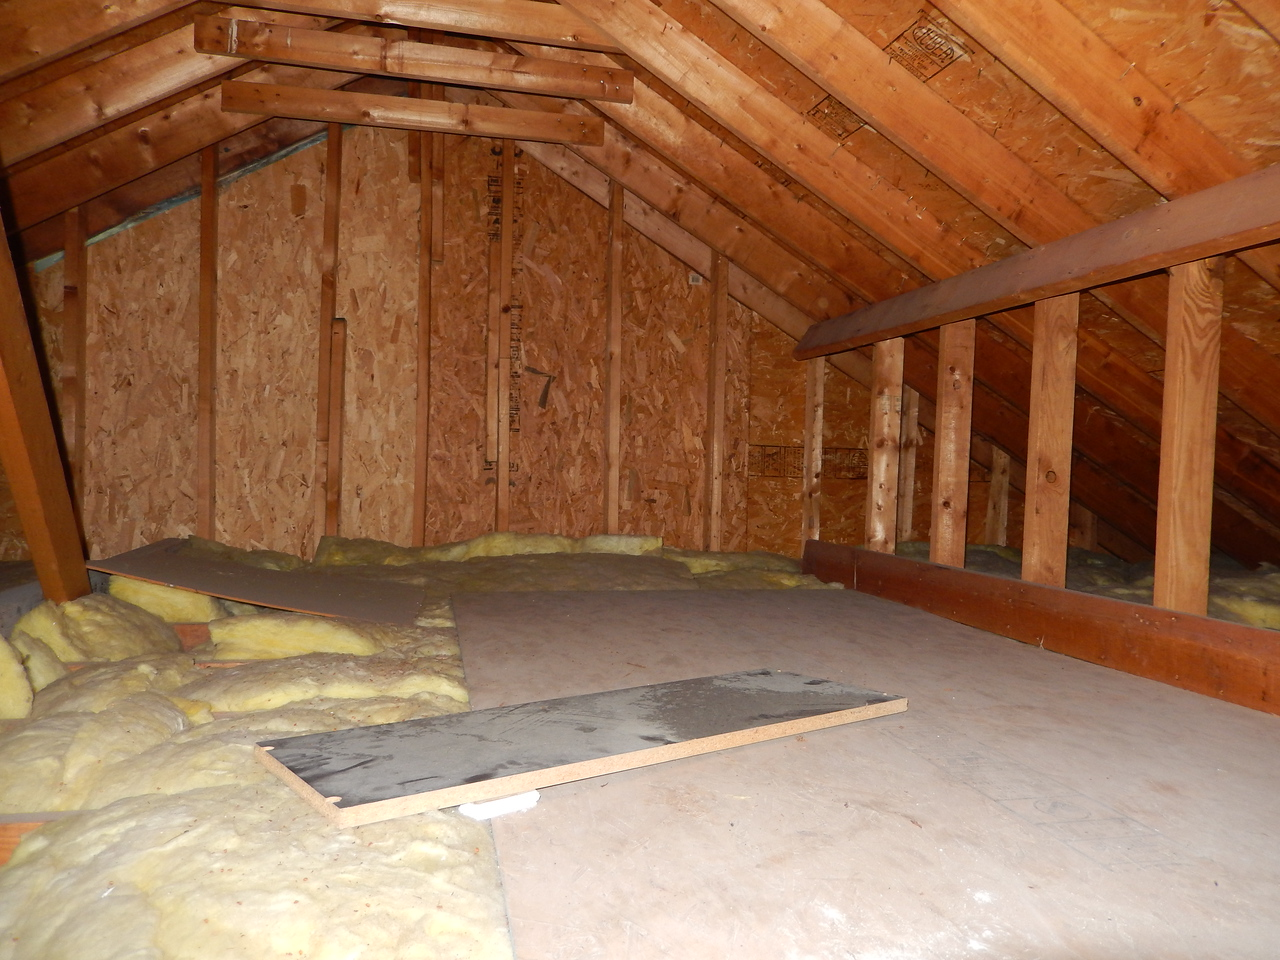 Attic area, 3x3 entrance